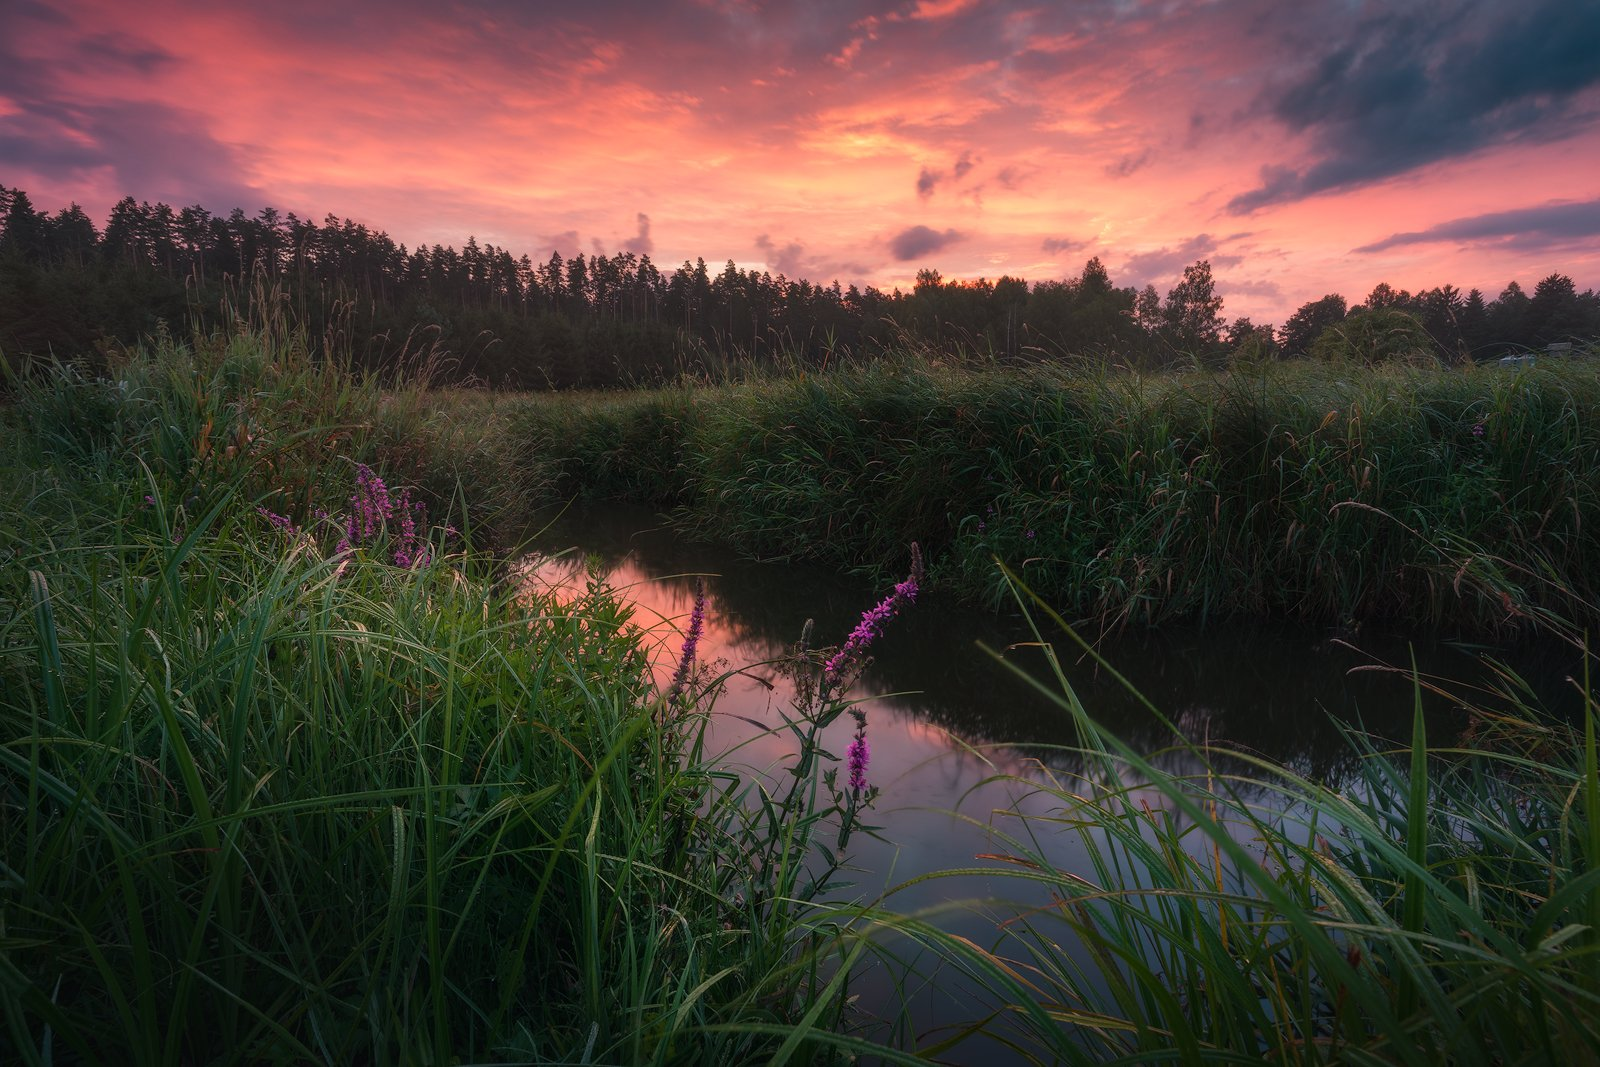 water sky clouds sunrise river wildflowers poland podlasie mood light colors, Maciej Warchoł